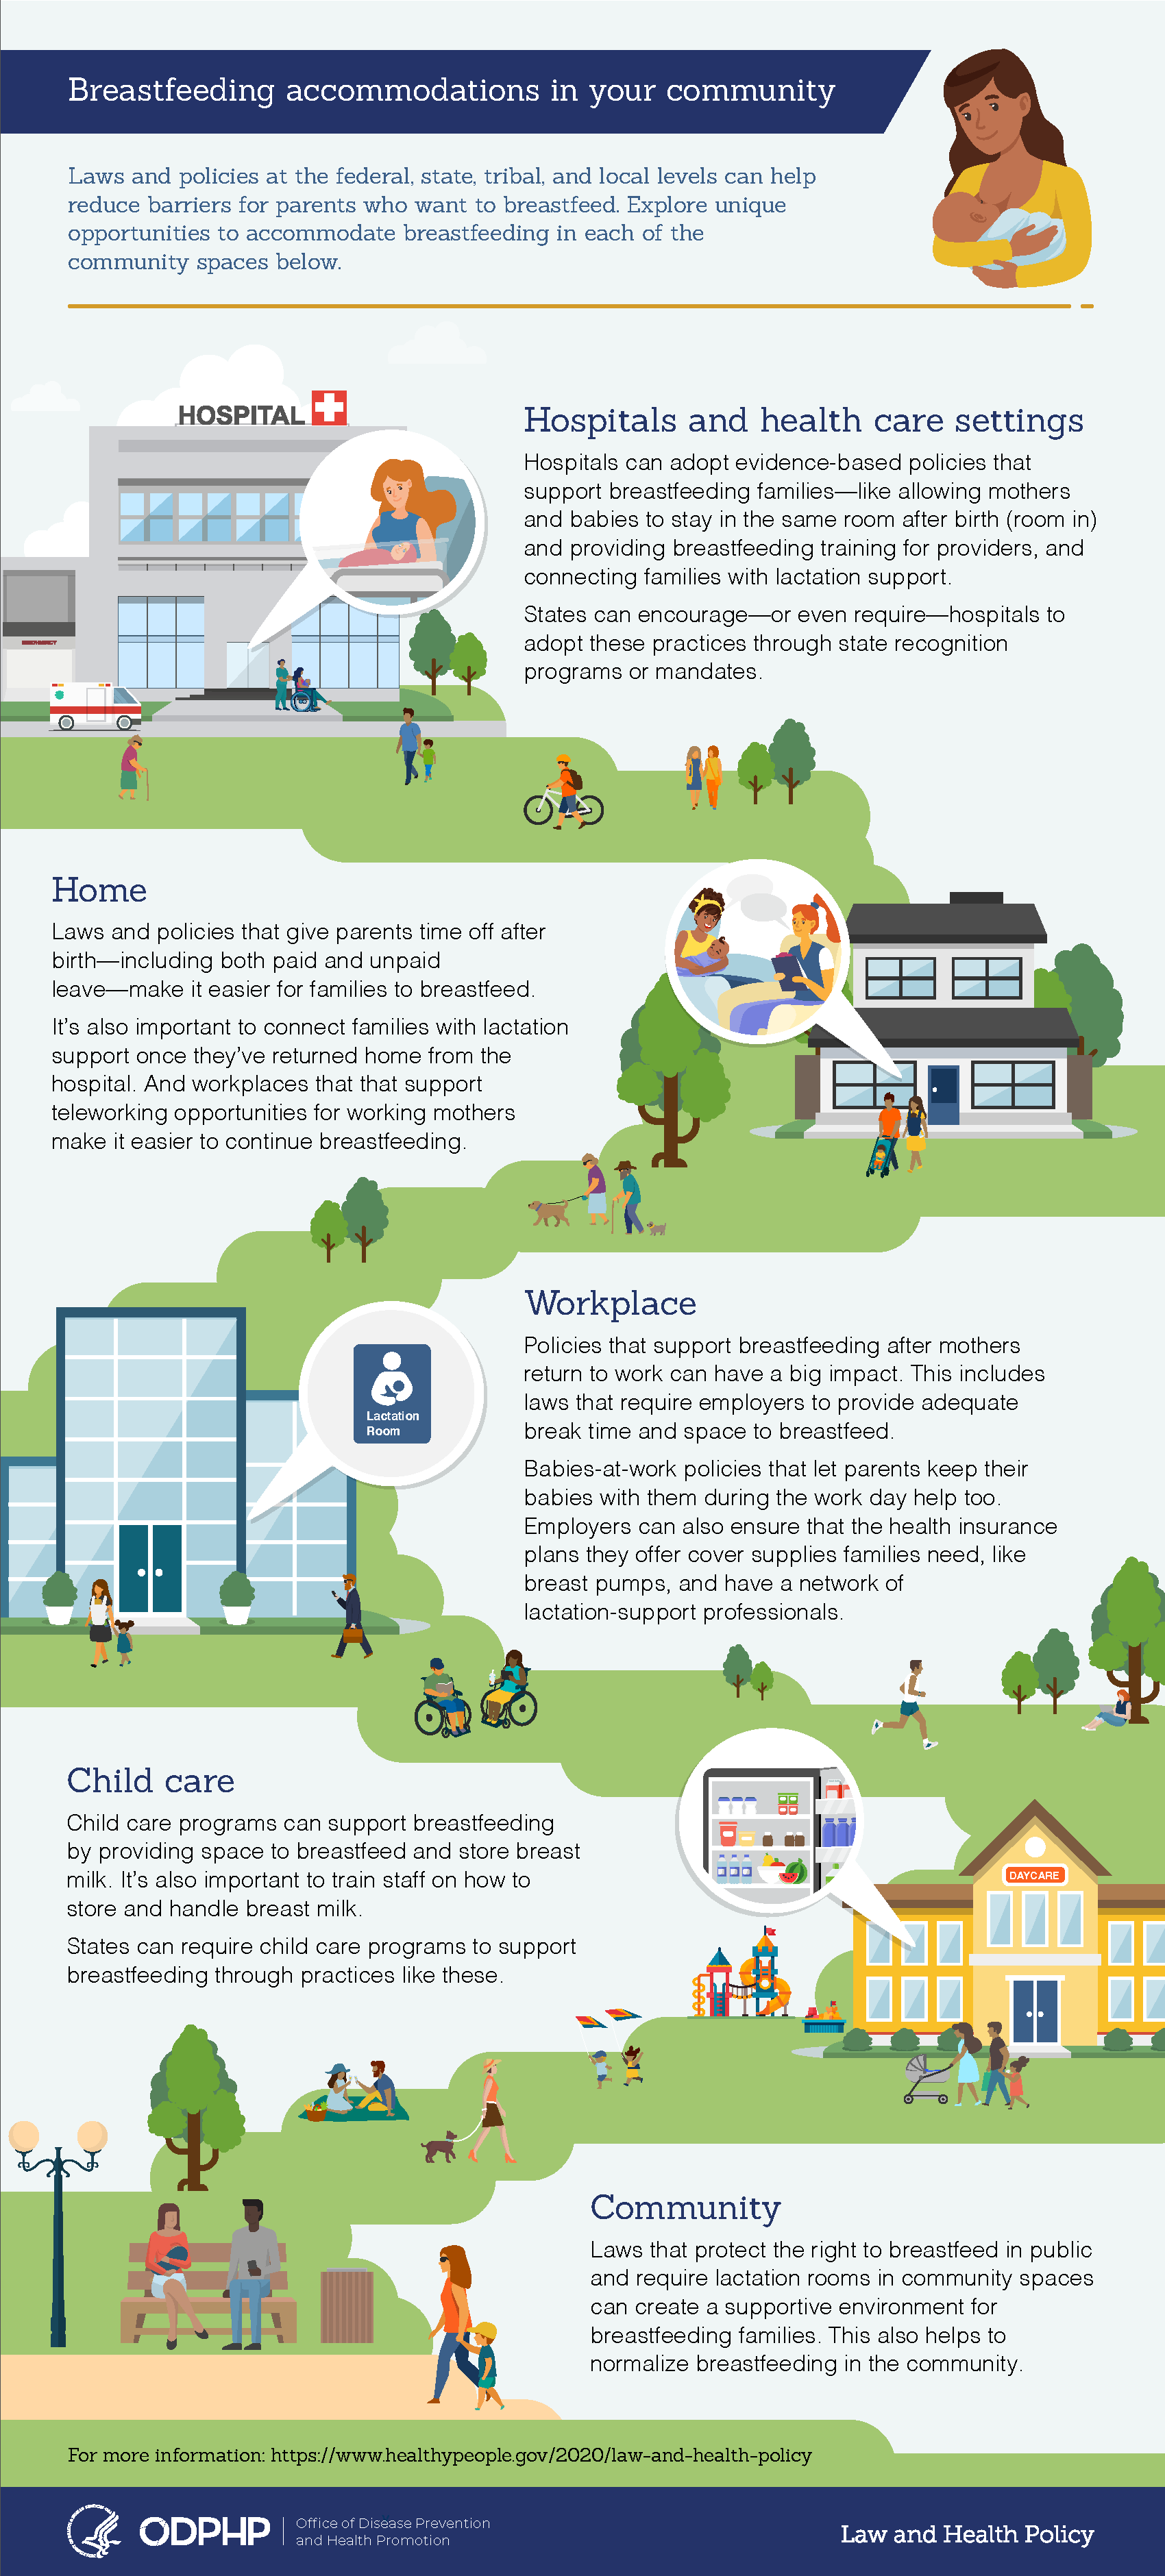 An infographic from the Office of Disease Prevention and Health Promotion explores unique opportunities to accommodate breastfeeding in a variety of community spaces.